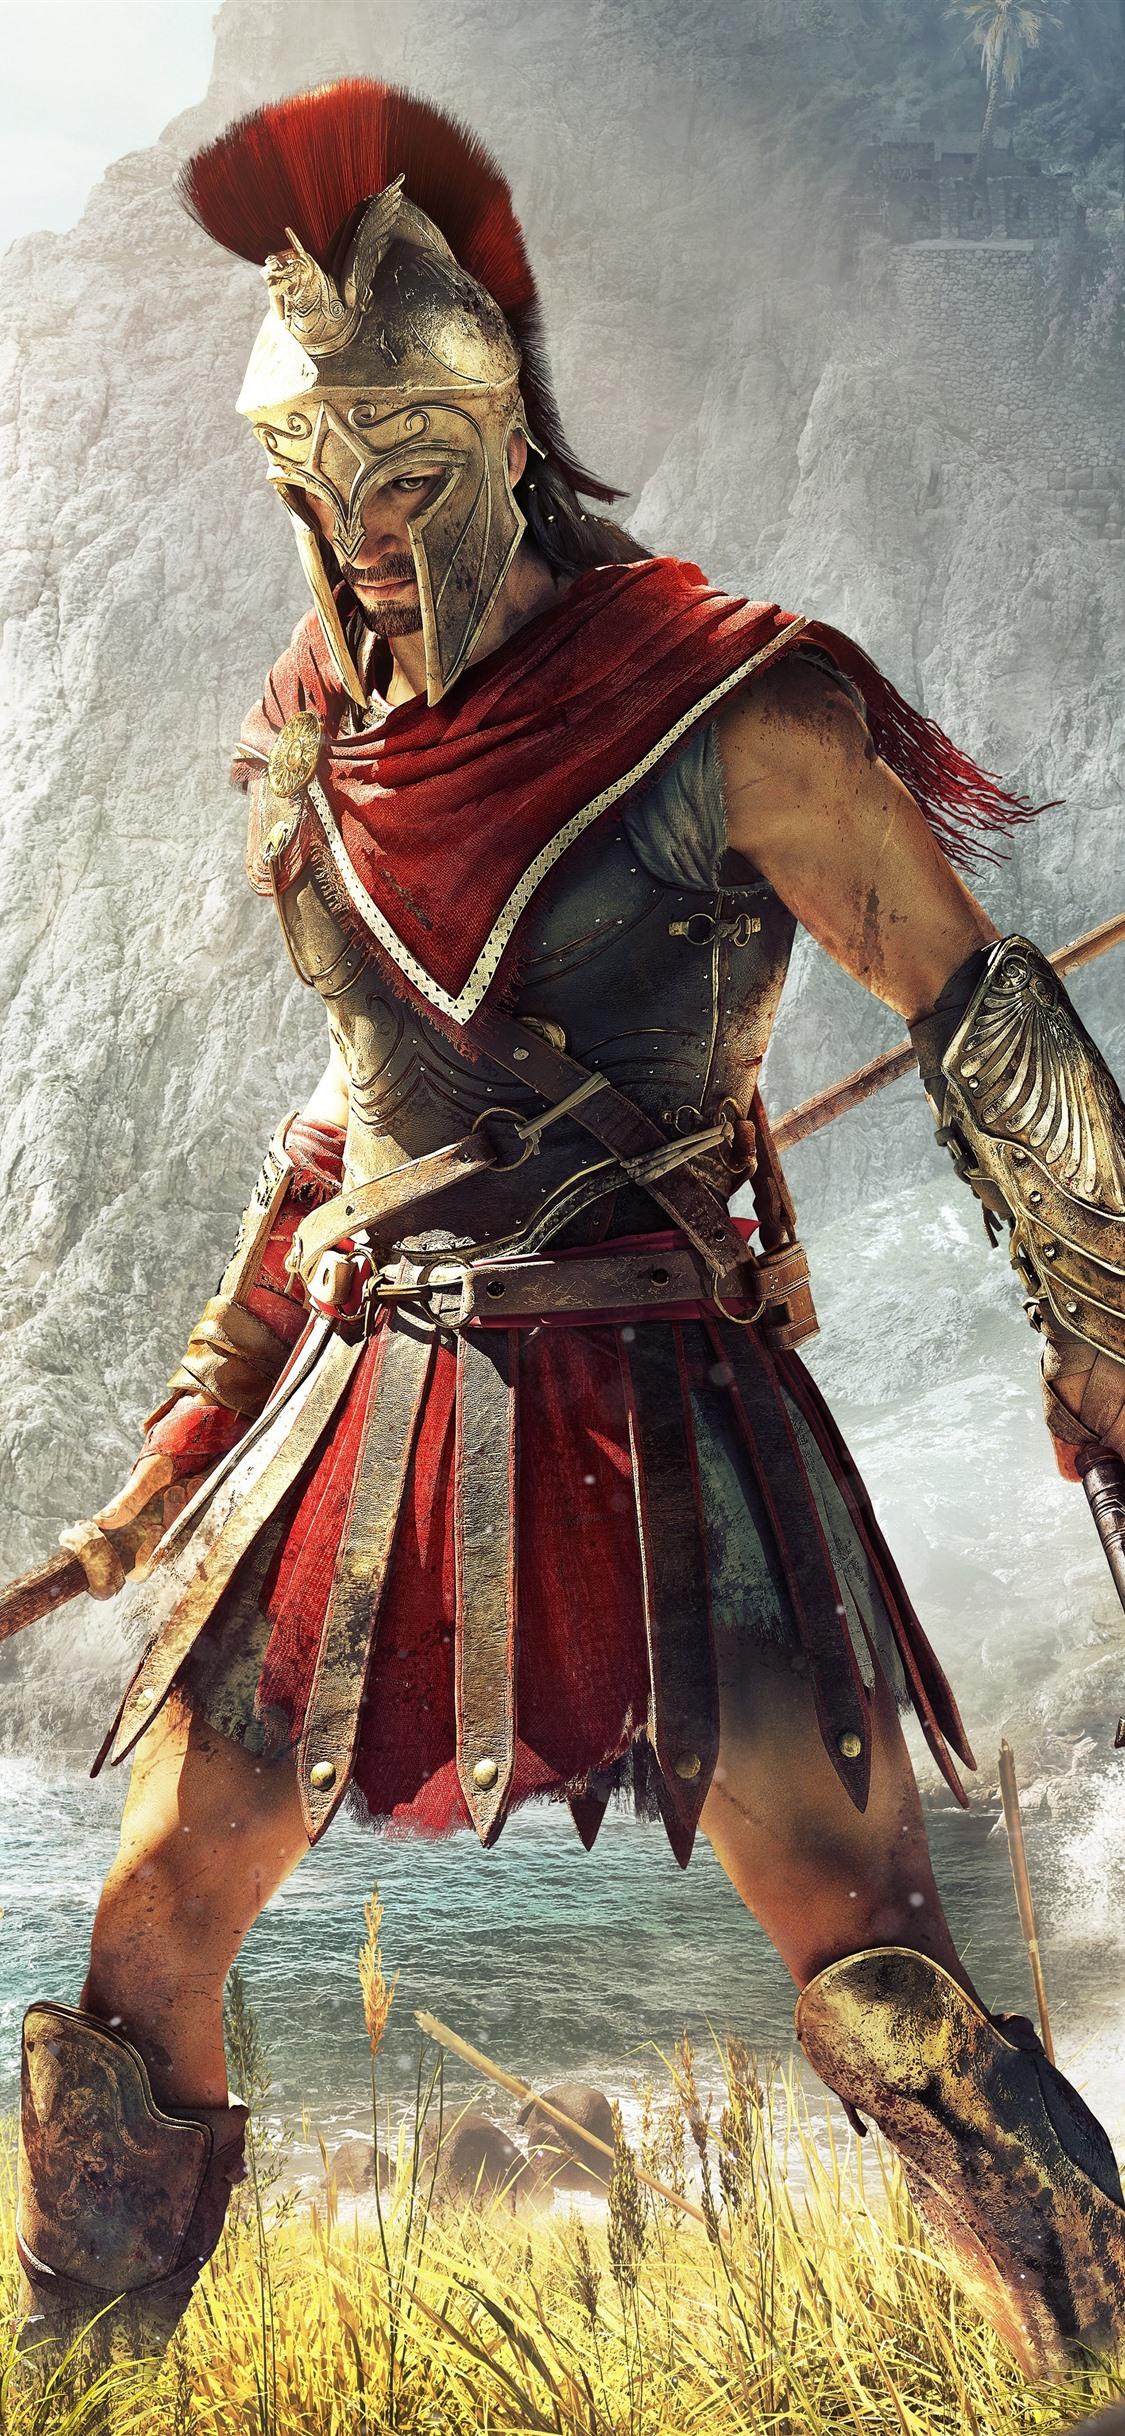 Assassin S Creed Odyssey Ubisoft Game 1125x2436 Iphone 11 Pro Xs